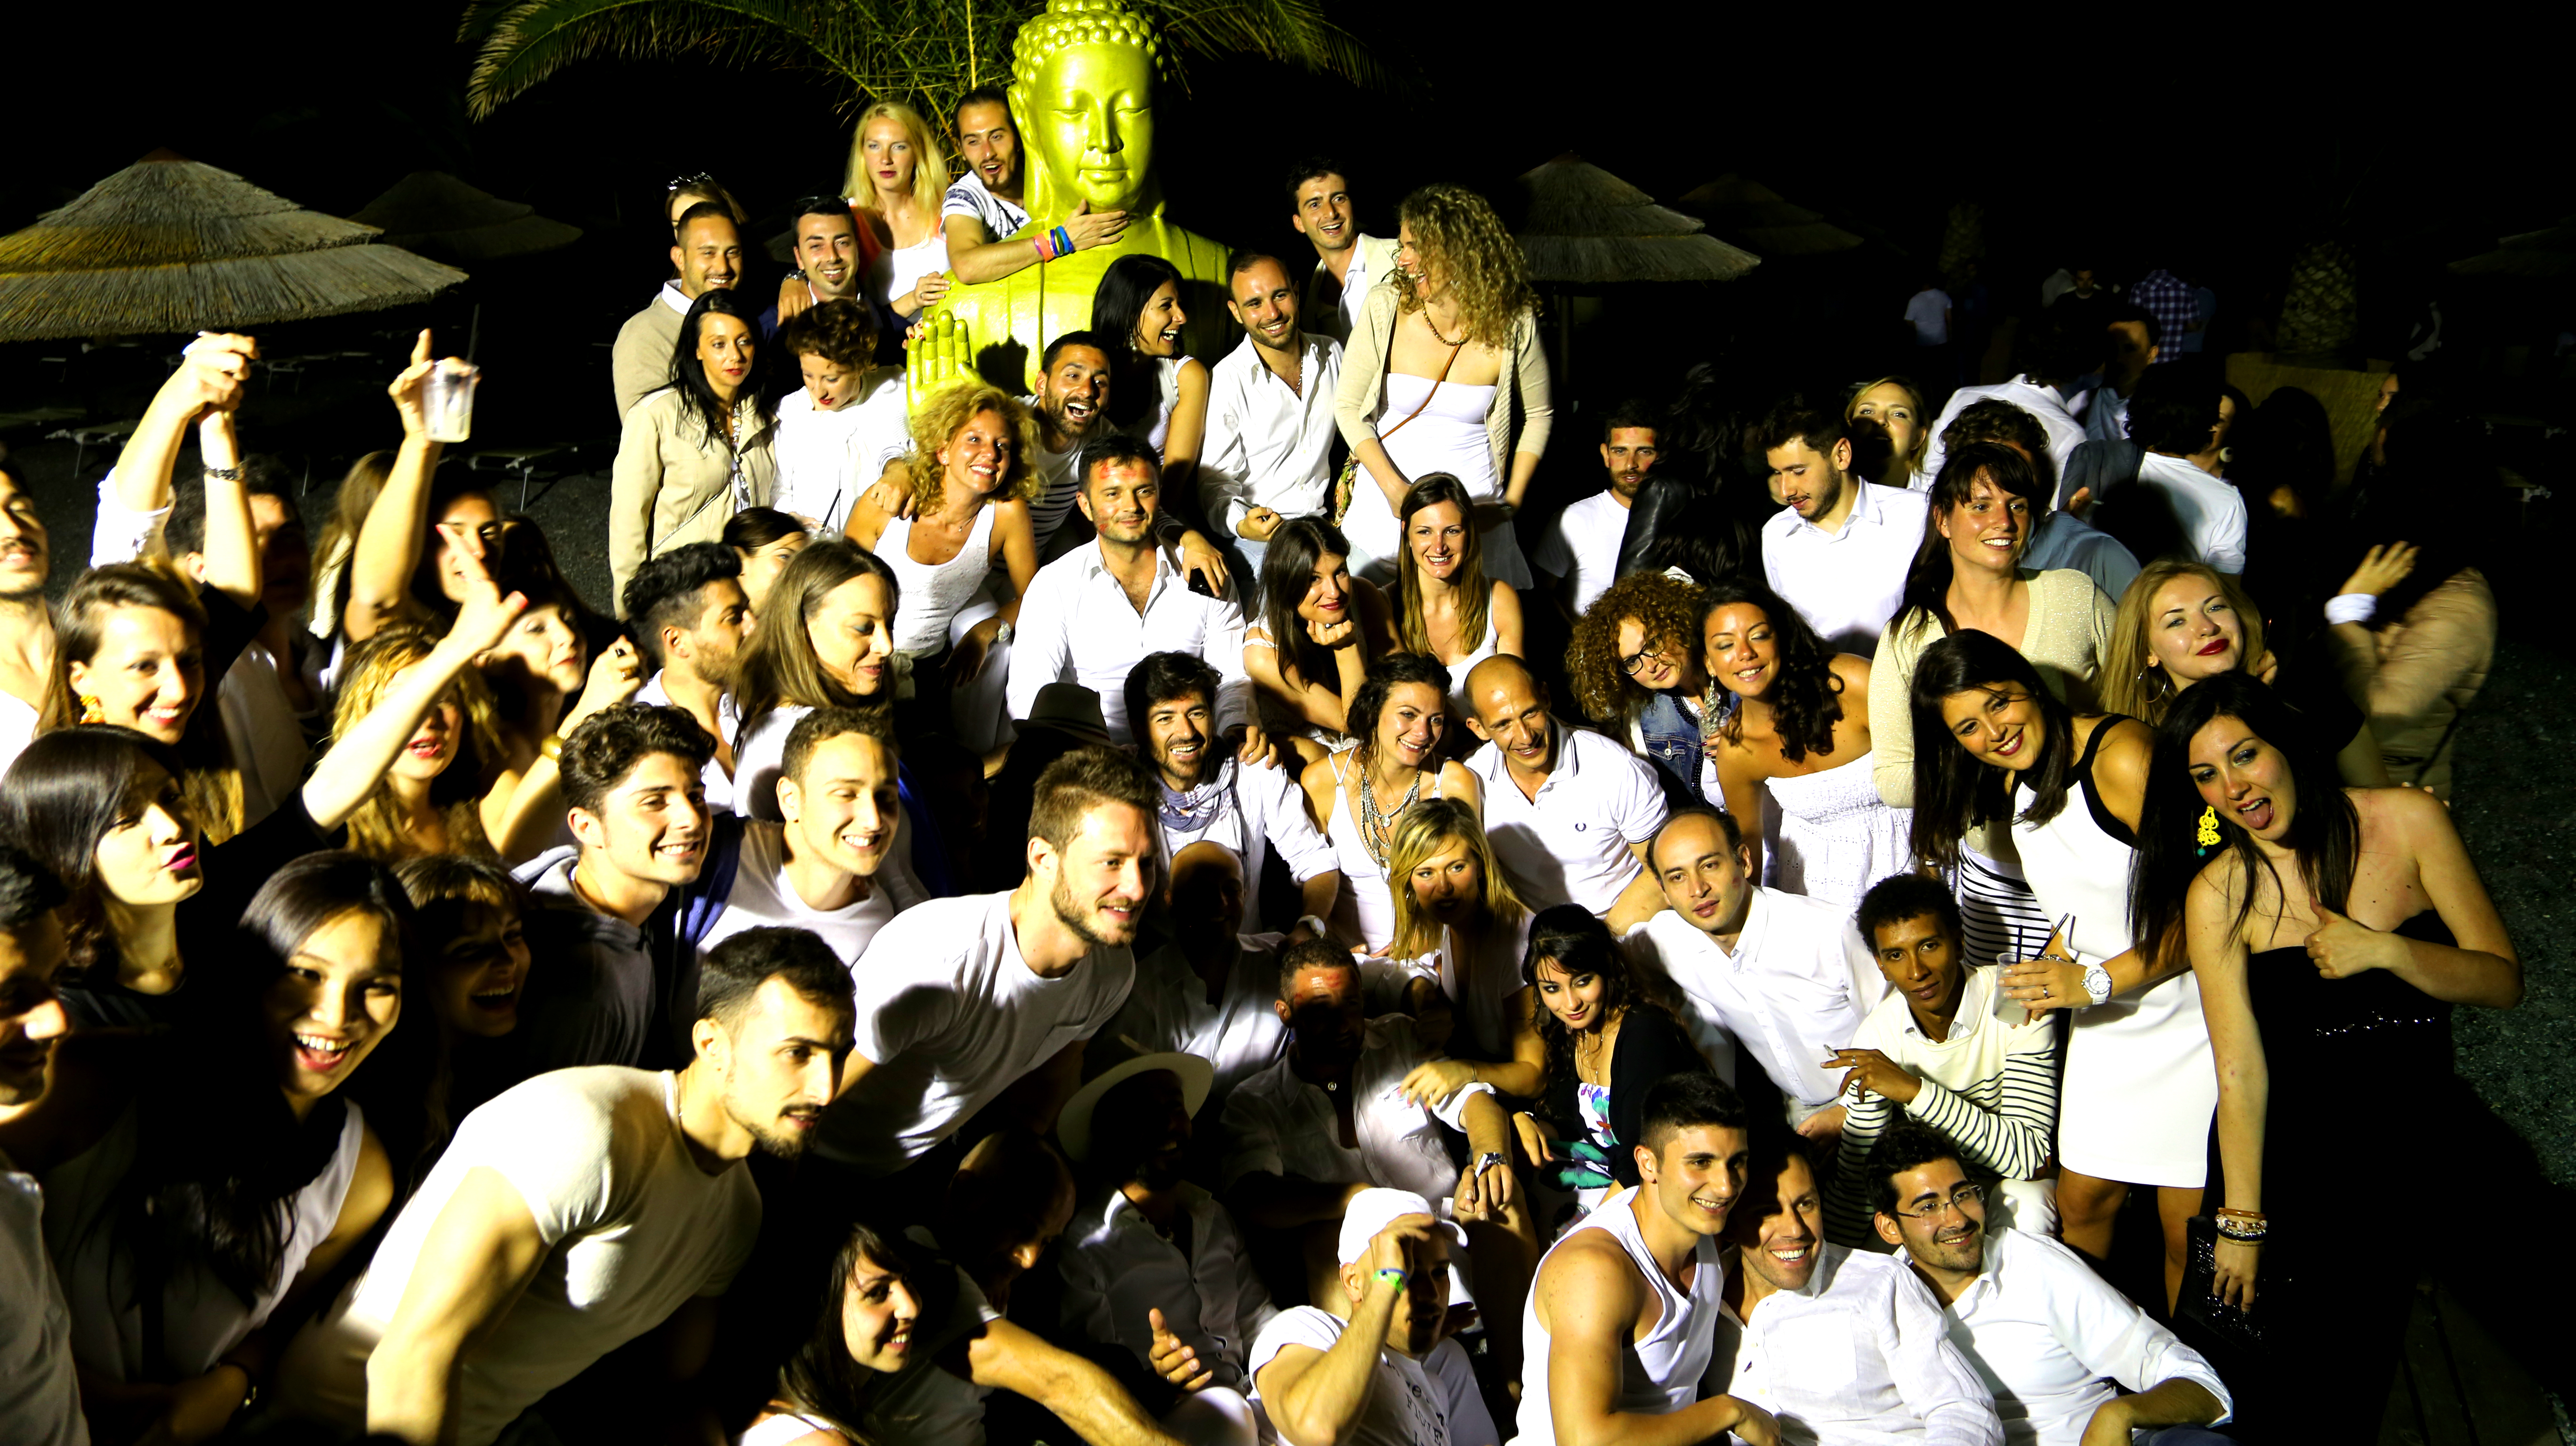 THE WHITE PARTY, 2015